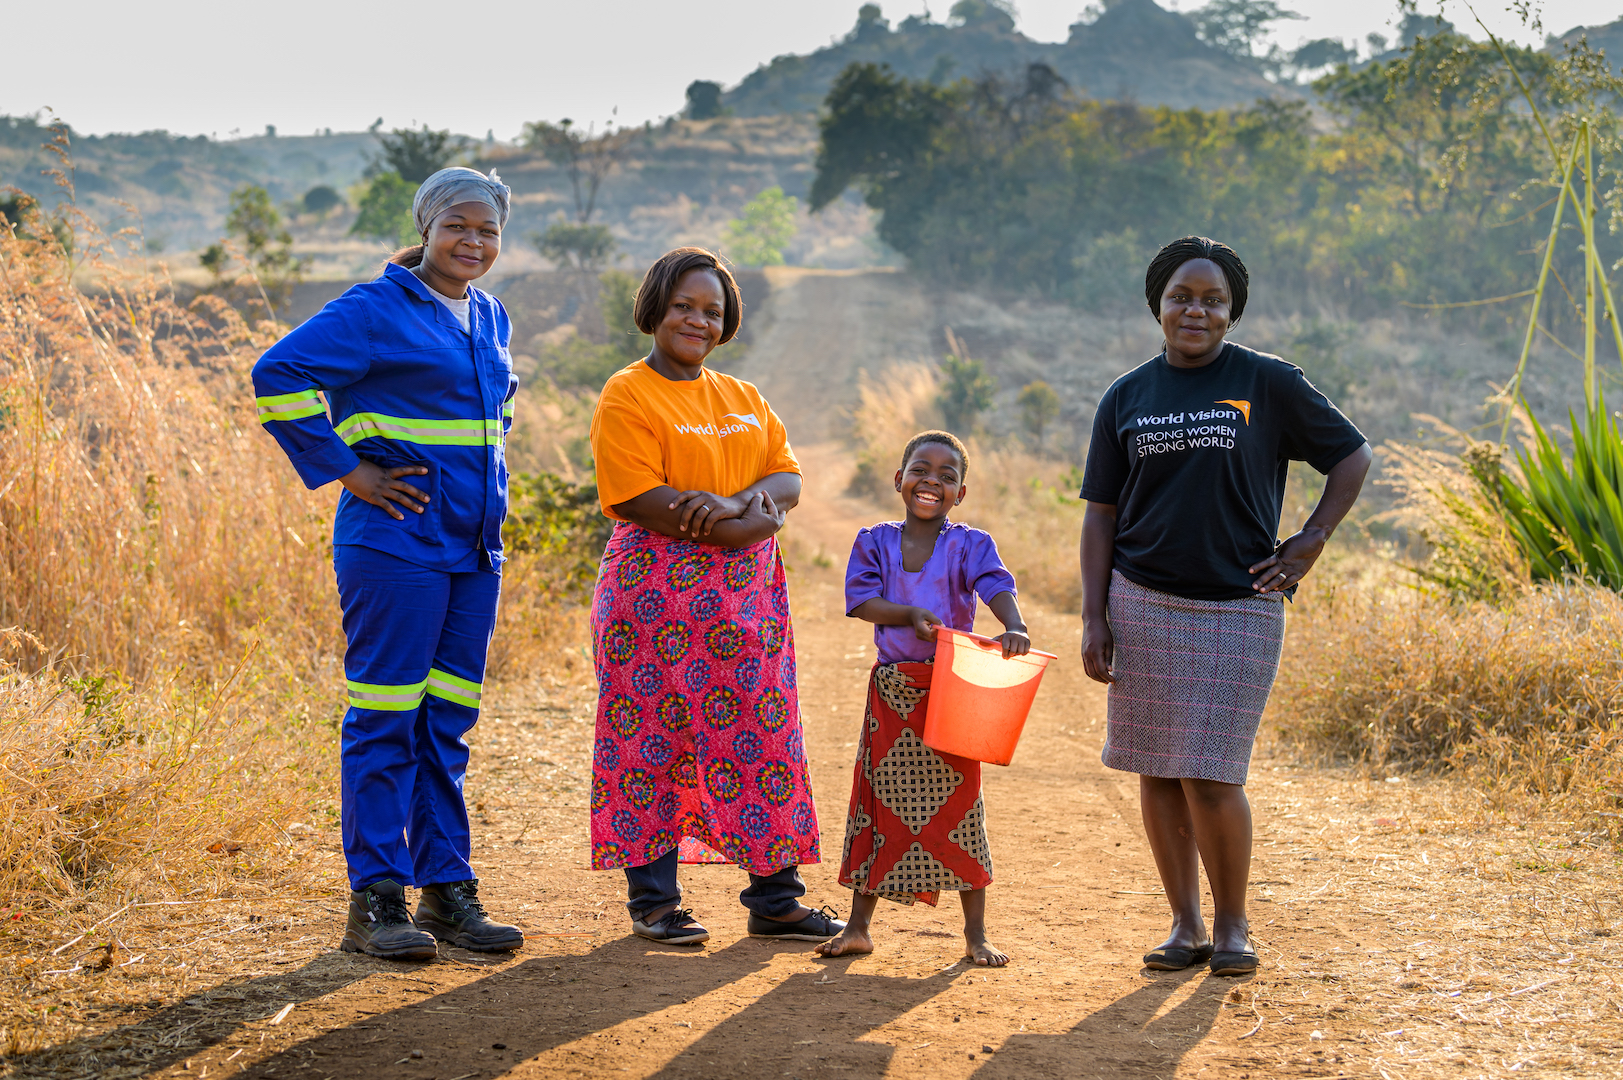 Strength also comes in the form of World Vision staff Liddah Manyozo, Mereena Mhone John, and Irene Chongwe (left to right with Ireen), who are coming alongside her family to promote change through clean water and sponsorship.